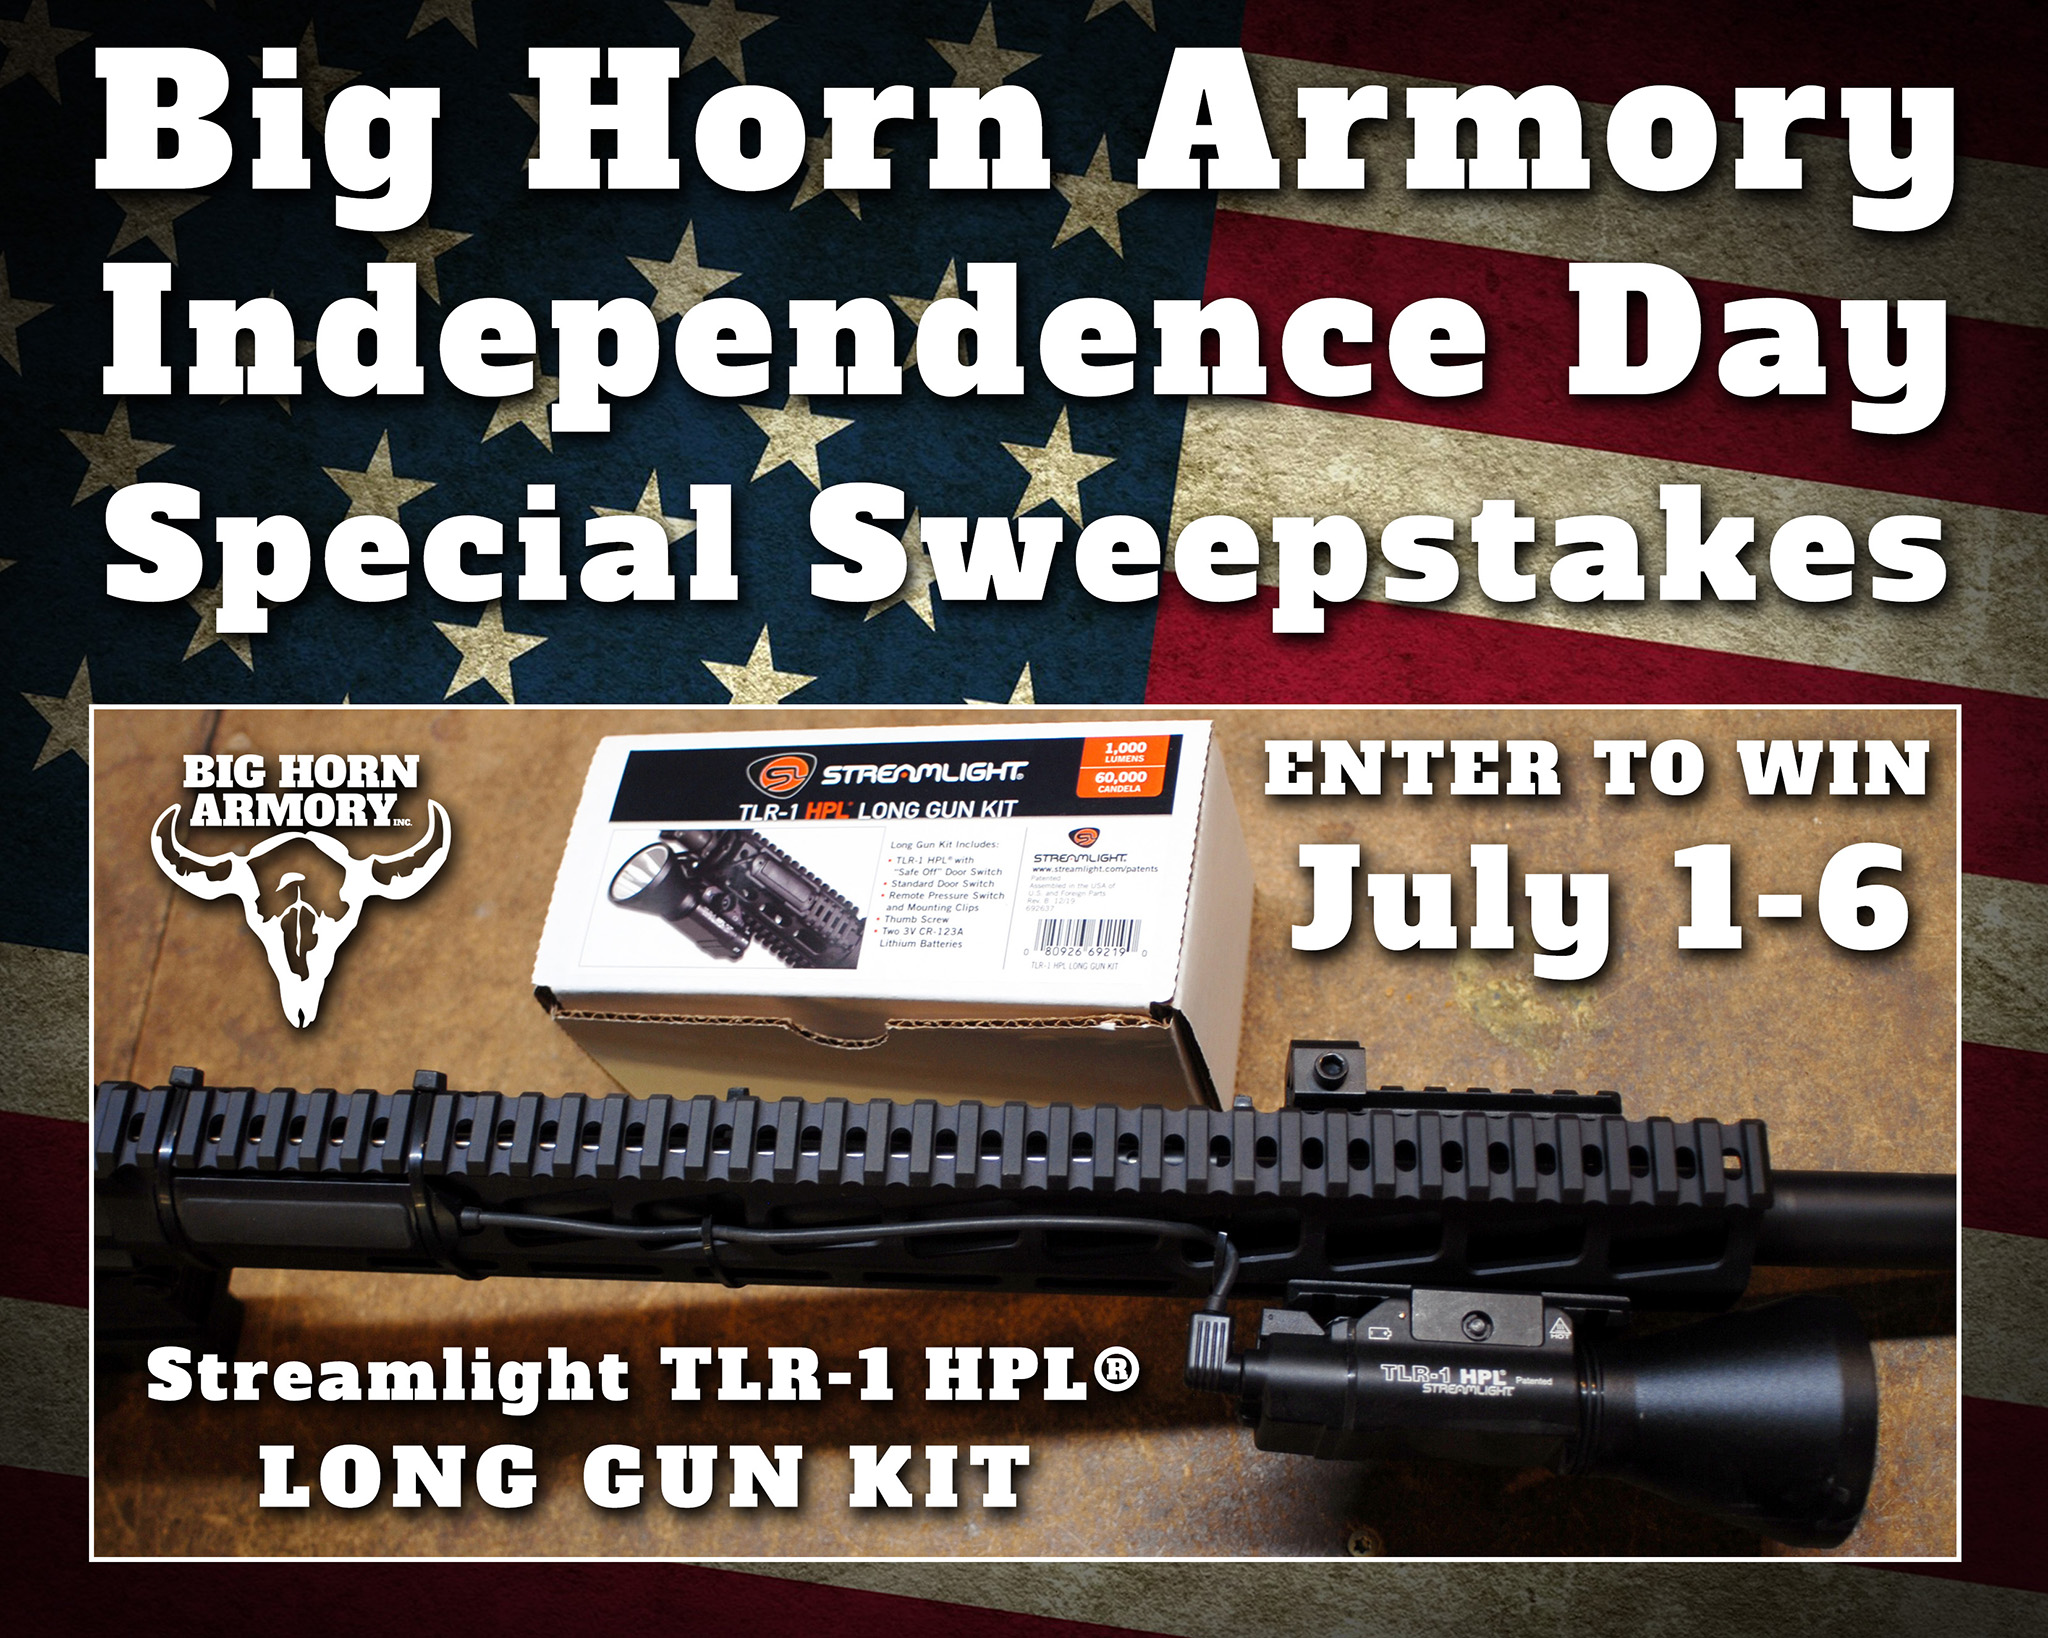 Big Horn Armory (BHA) Celebrates America's Independence with a Special Sweepstakes